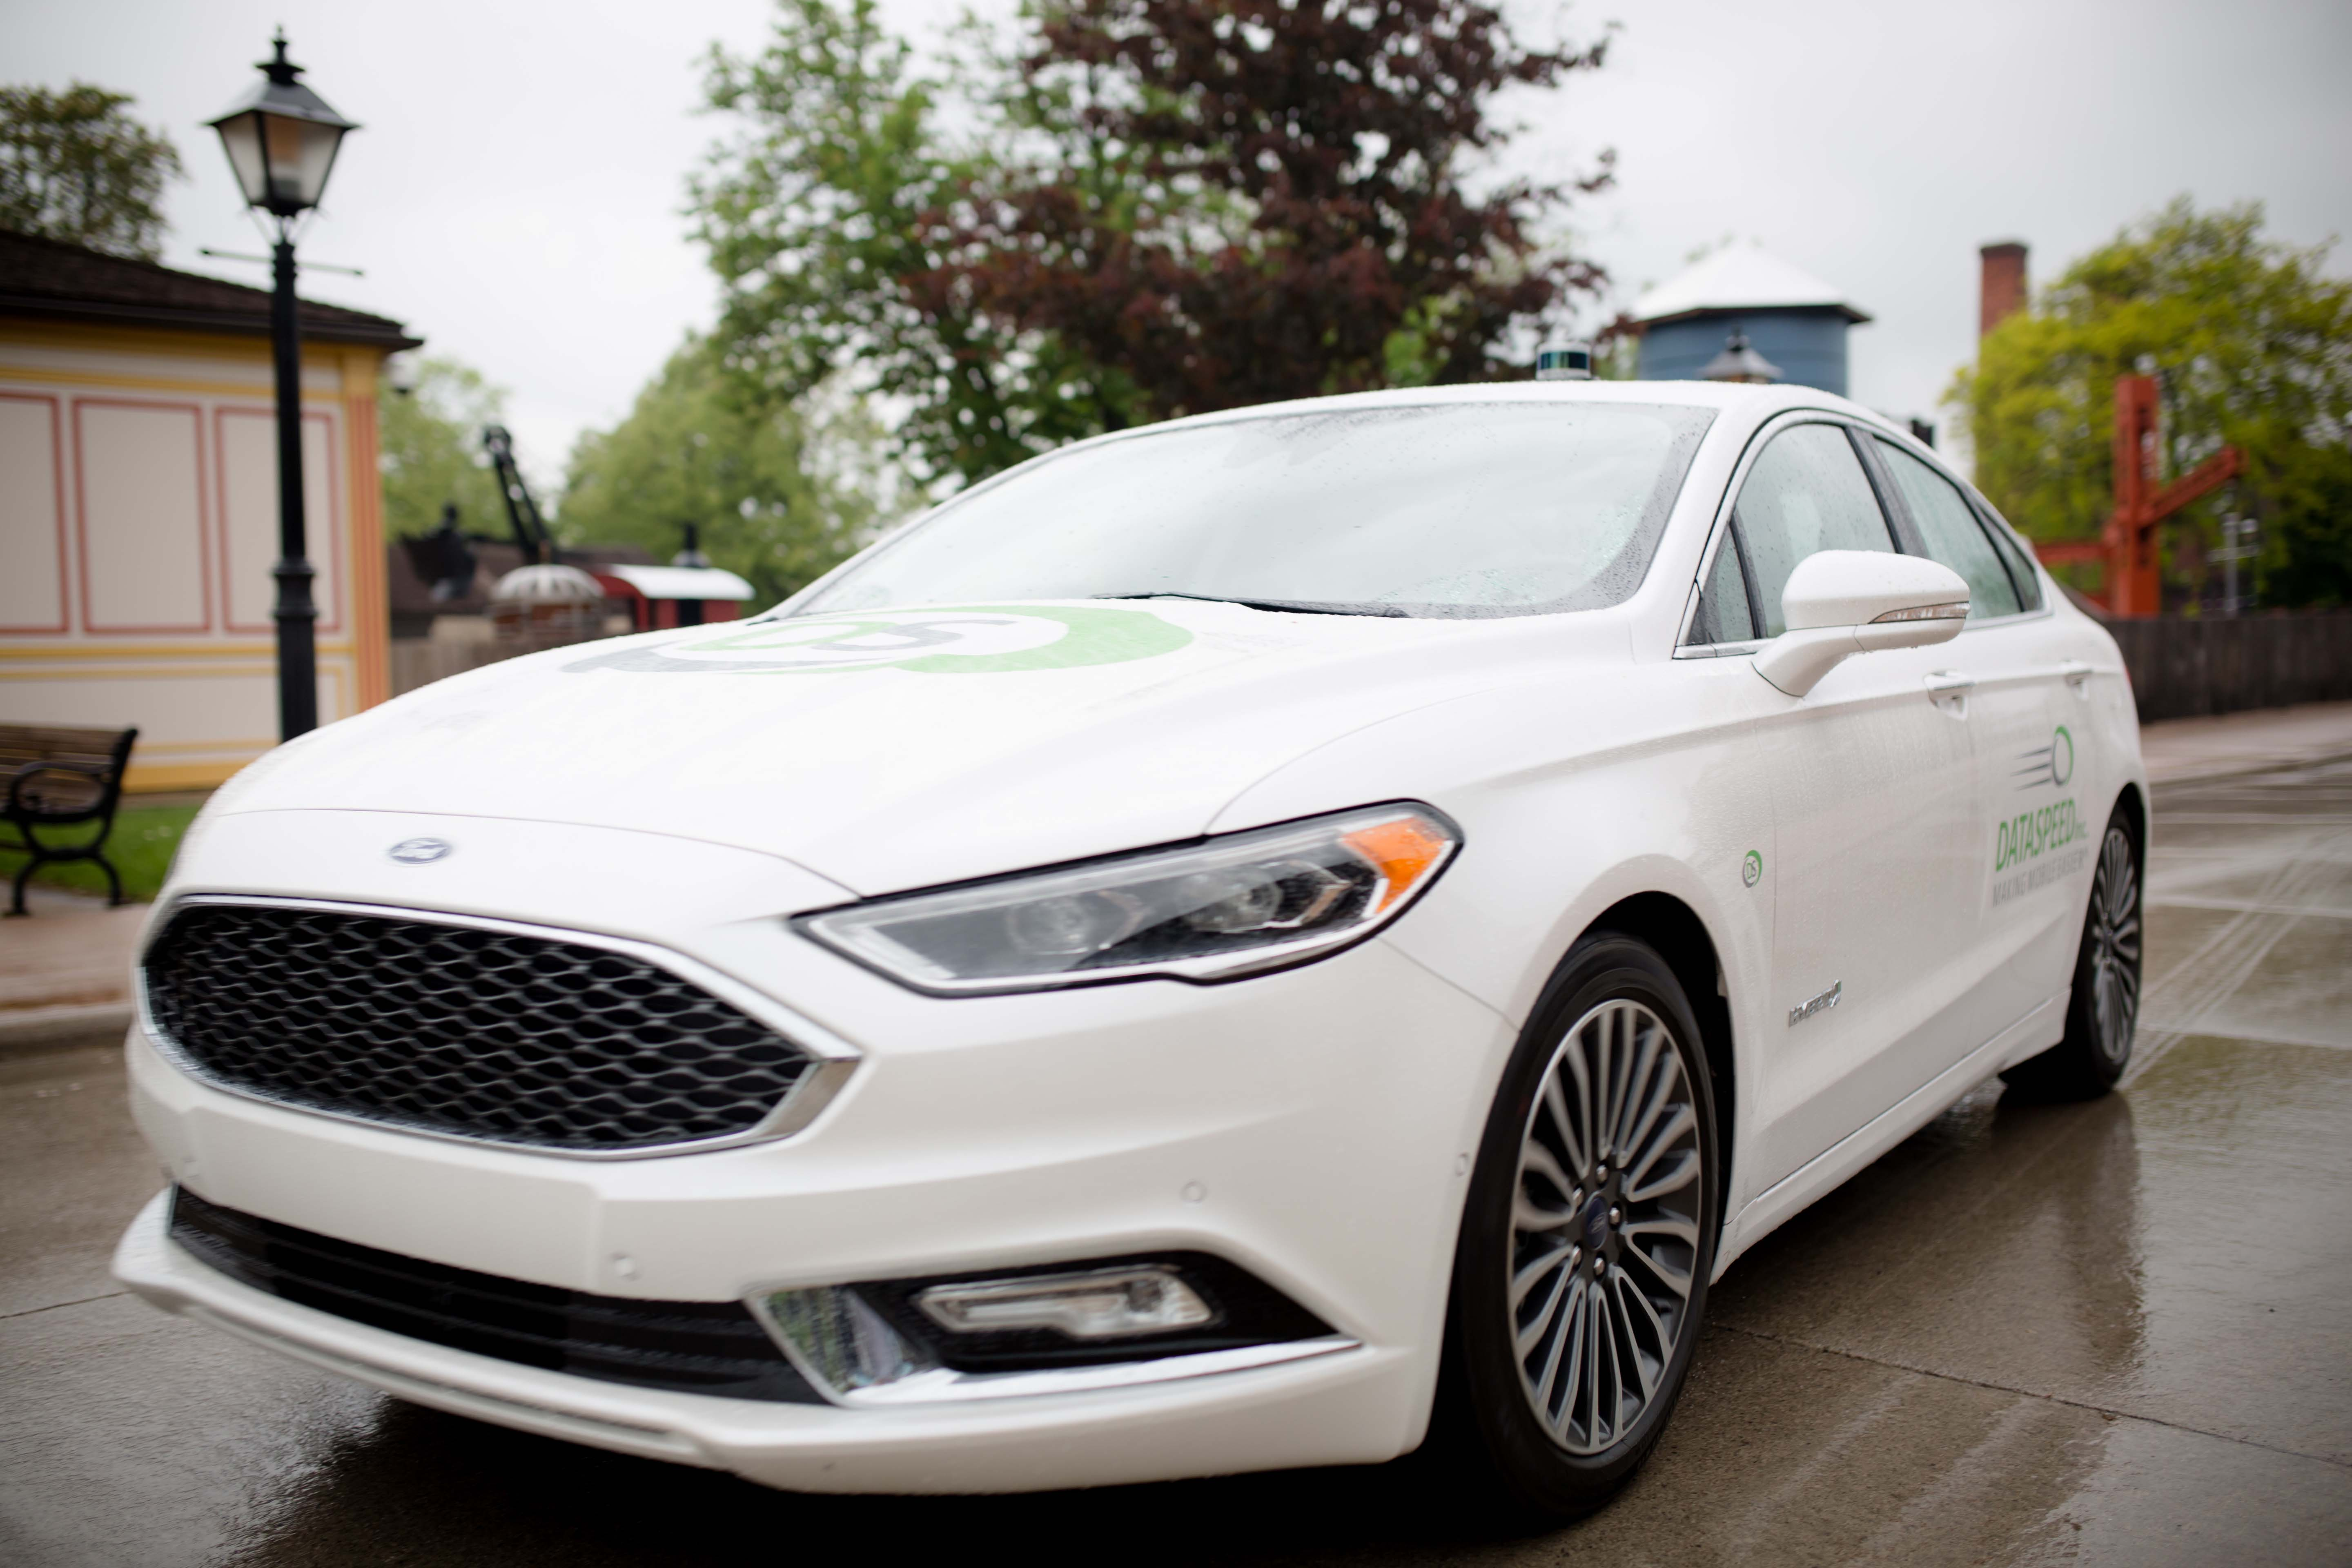 Ford Fusion dataspeed at greenfield village